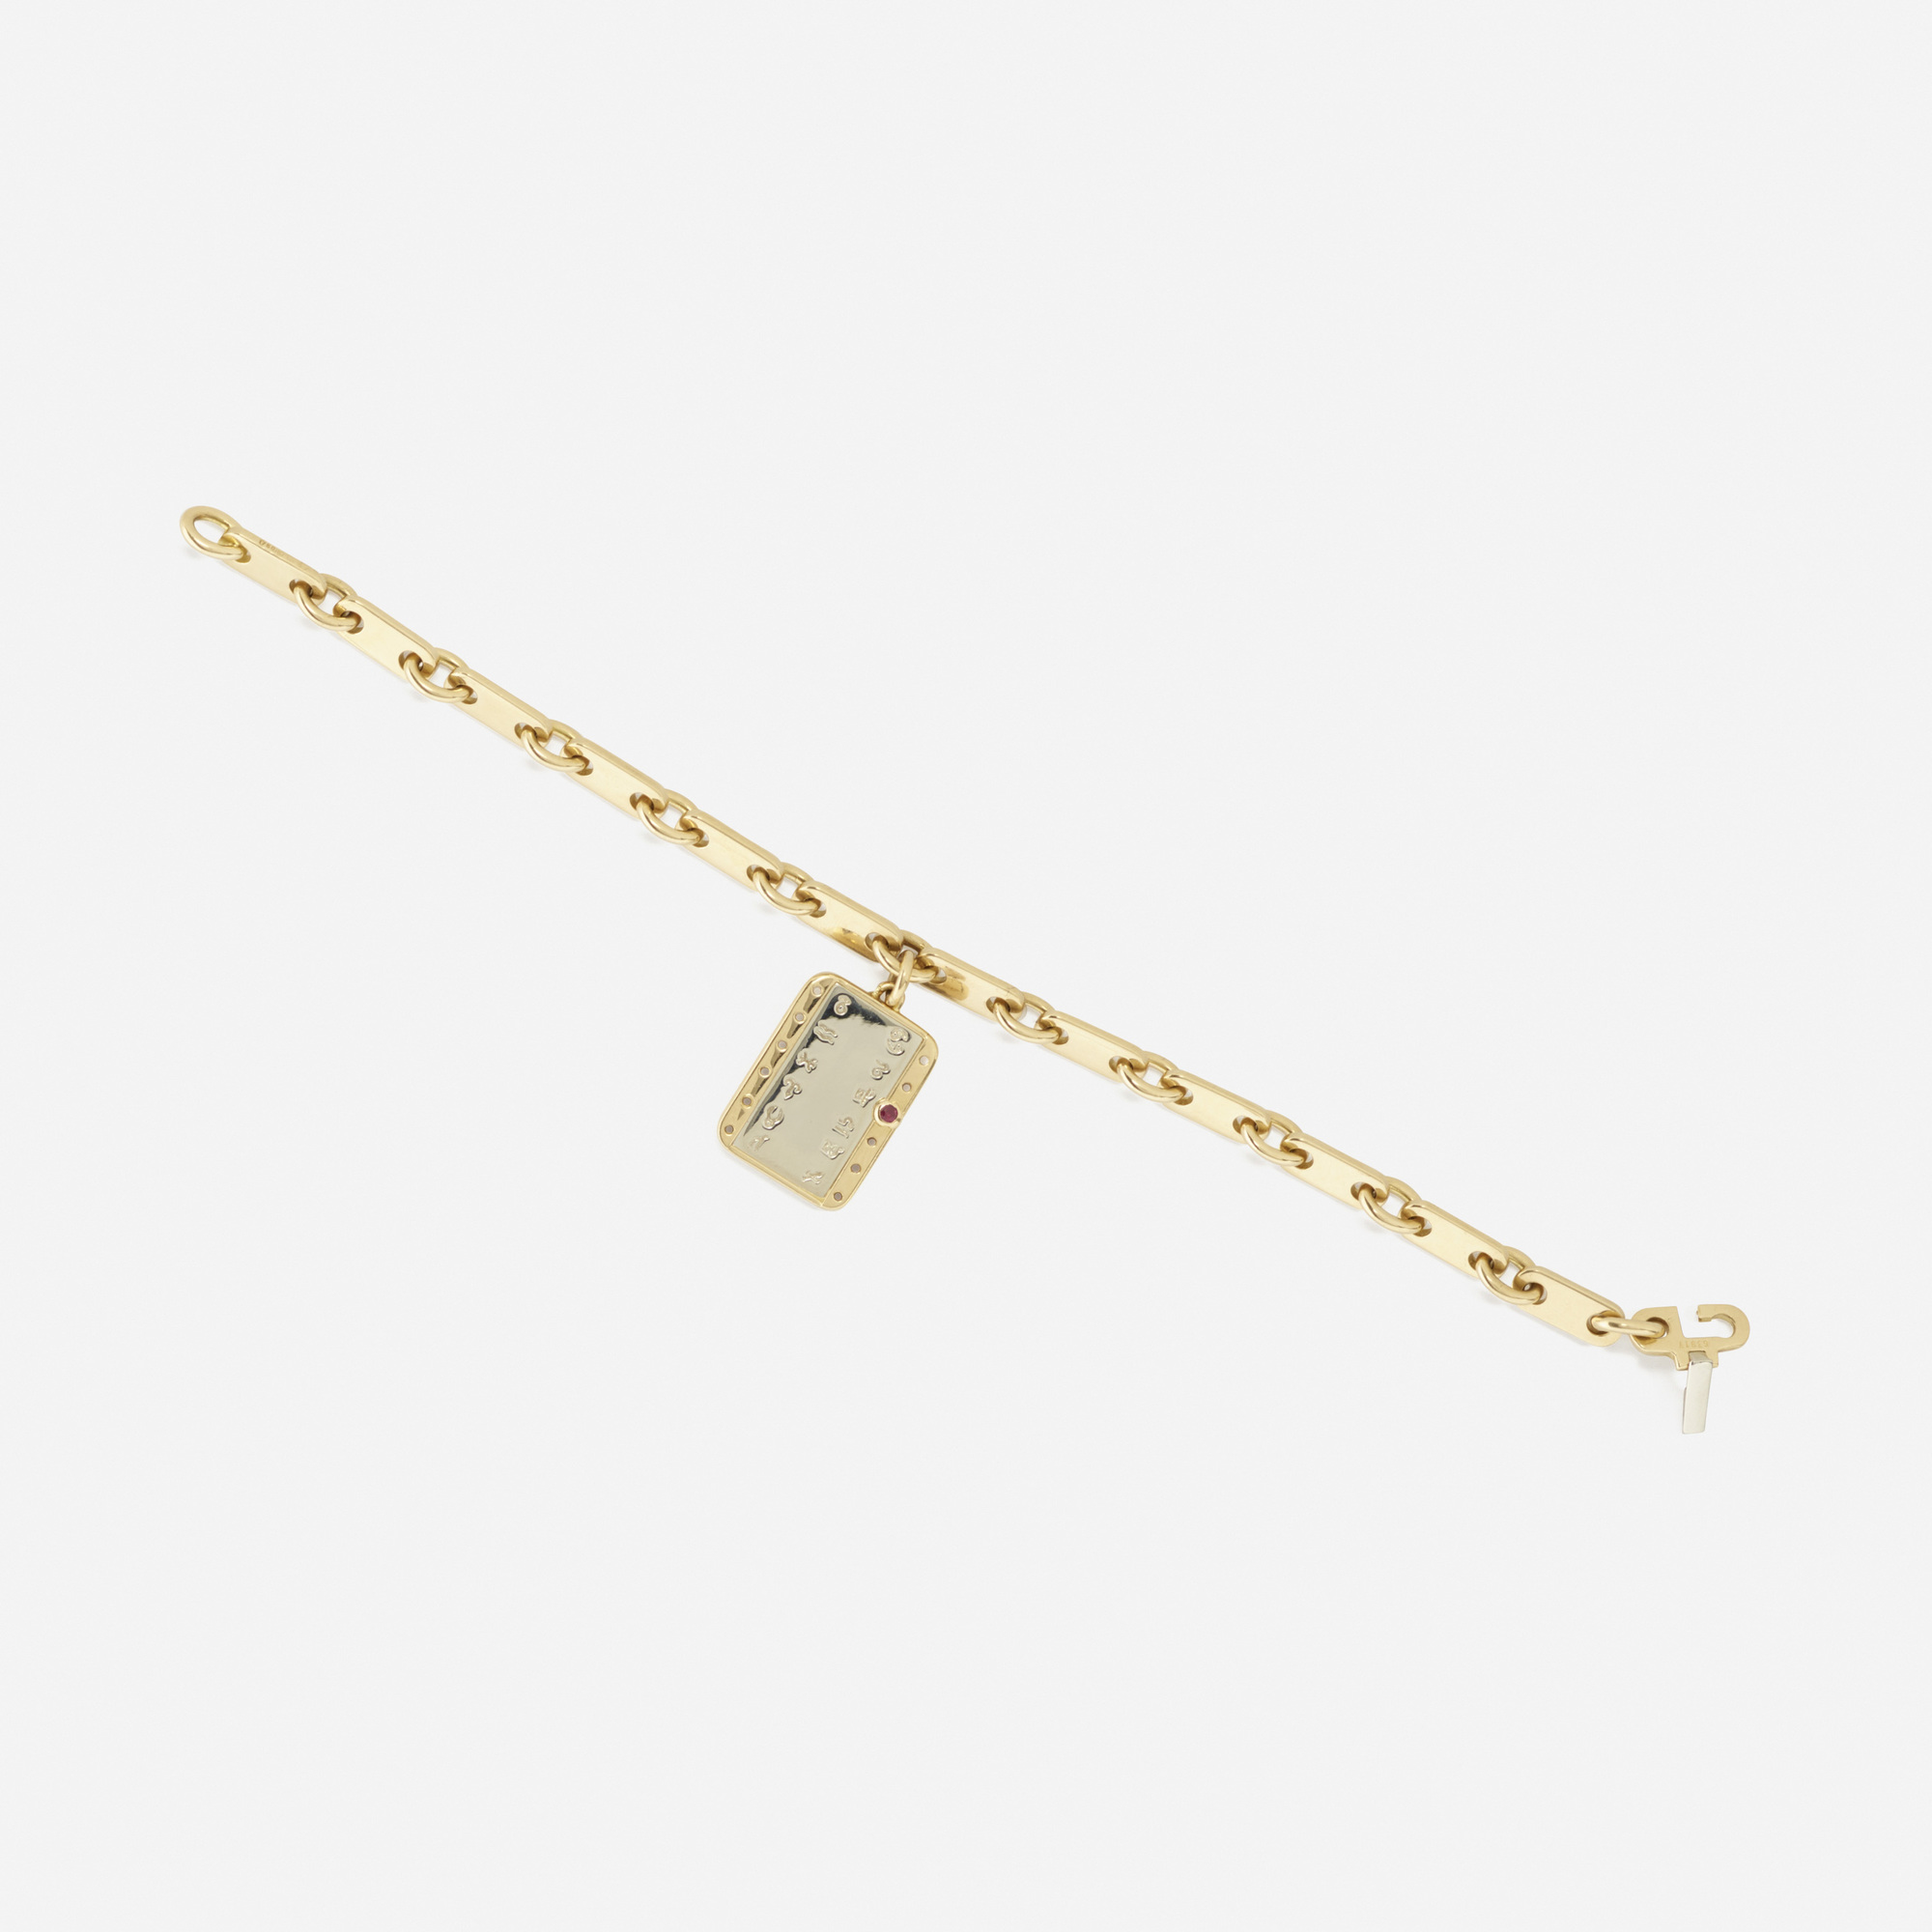 169: Cartier / A gold and ruby Zodiac charm bracelet (2 of 2)